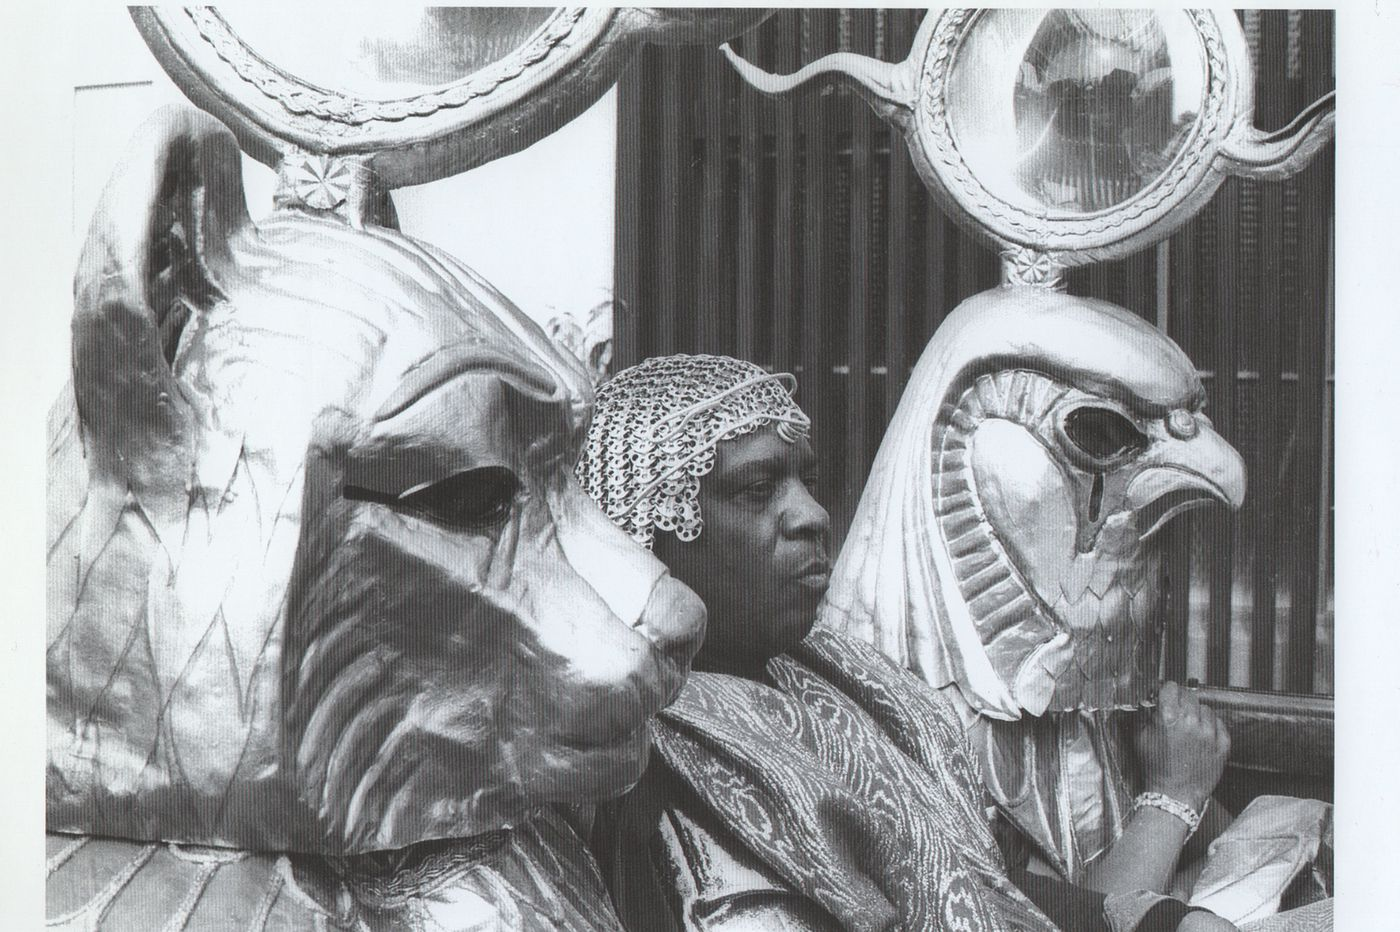 'Are you sure it's Sun Ra?': Rare recording by the Philly jazz giant at Haverford College finally sees the light of day